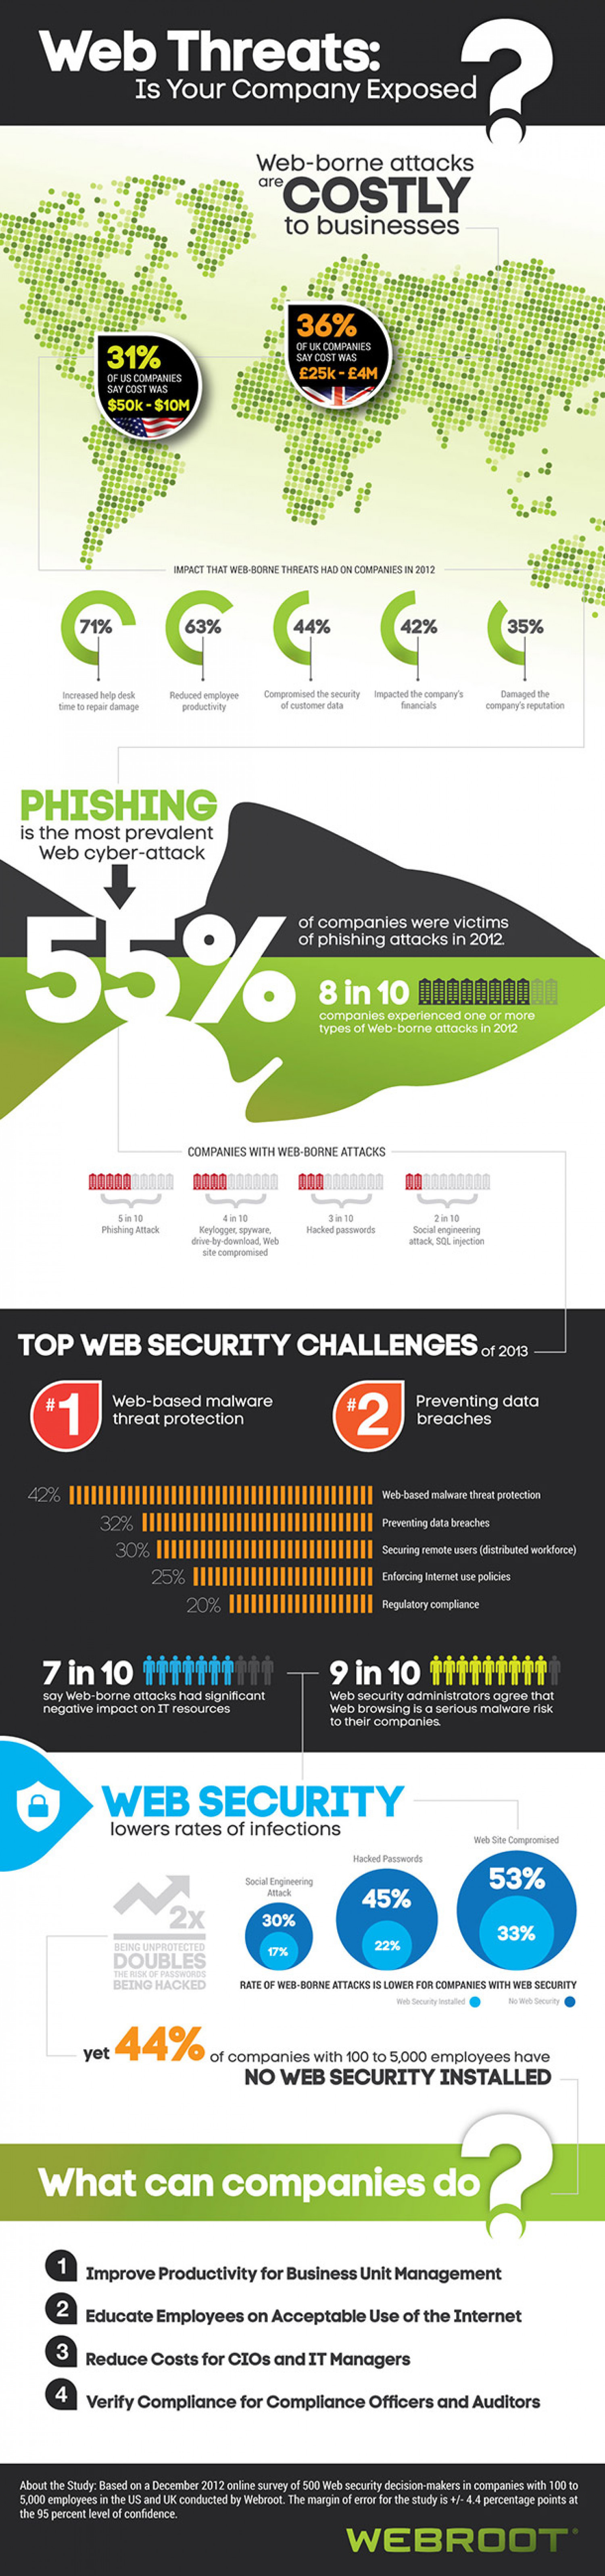 Web Threats: Is your company exposed? Infographic